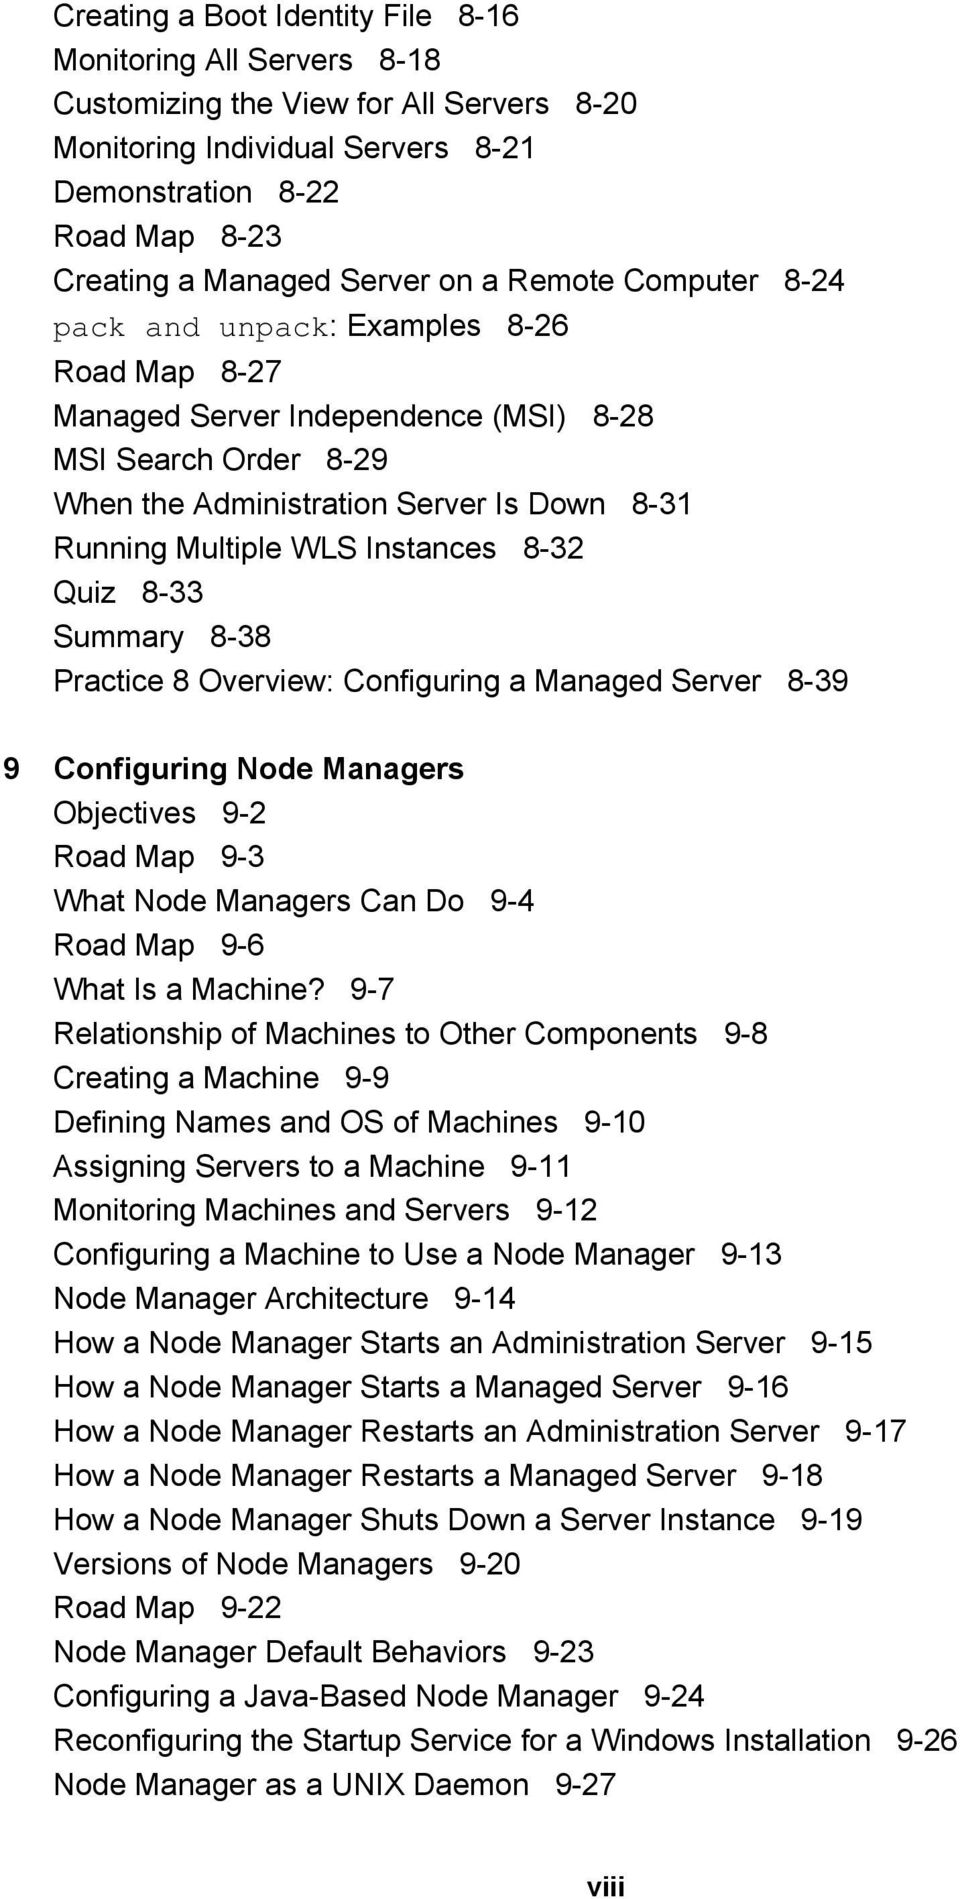 Instances 8-32 Quiz 8-33 Summary 8-38 Practice 8 Overview: Configuring a Managed Server 8-39 9 Configuring Node Managers Objectives 9-2 Road Map 9-3 What Node Managers Can Do 9-4 Road Map 9-6 What Is